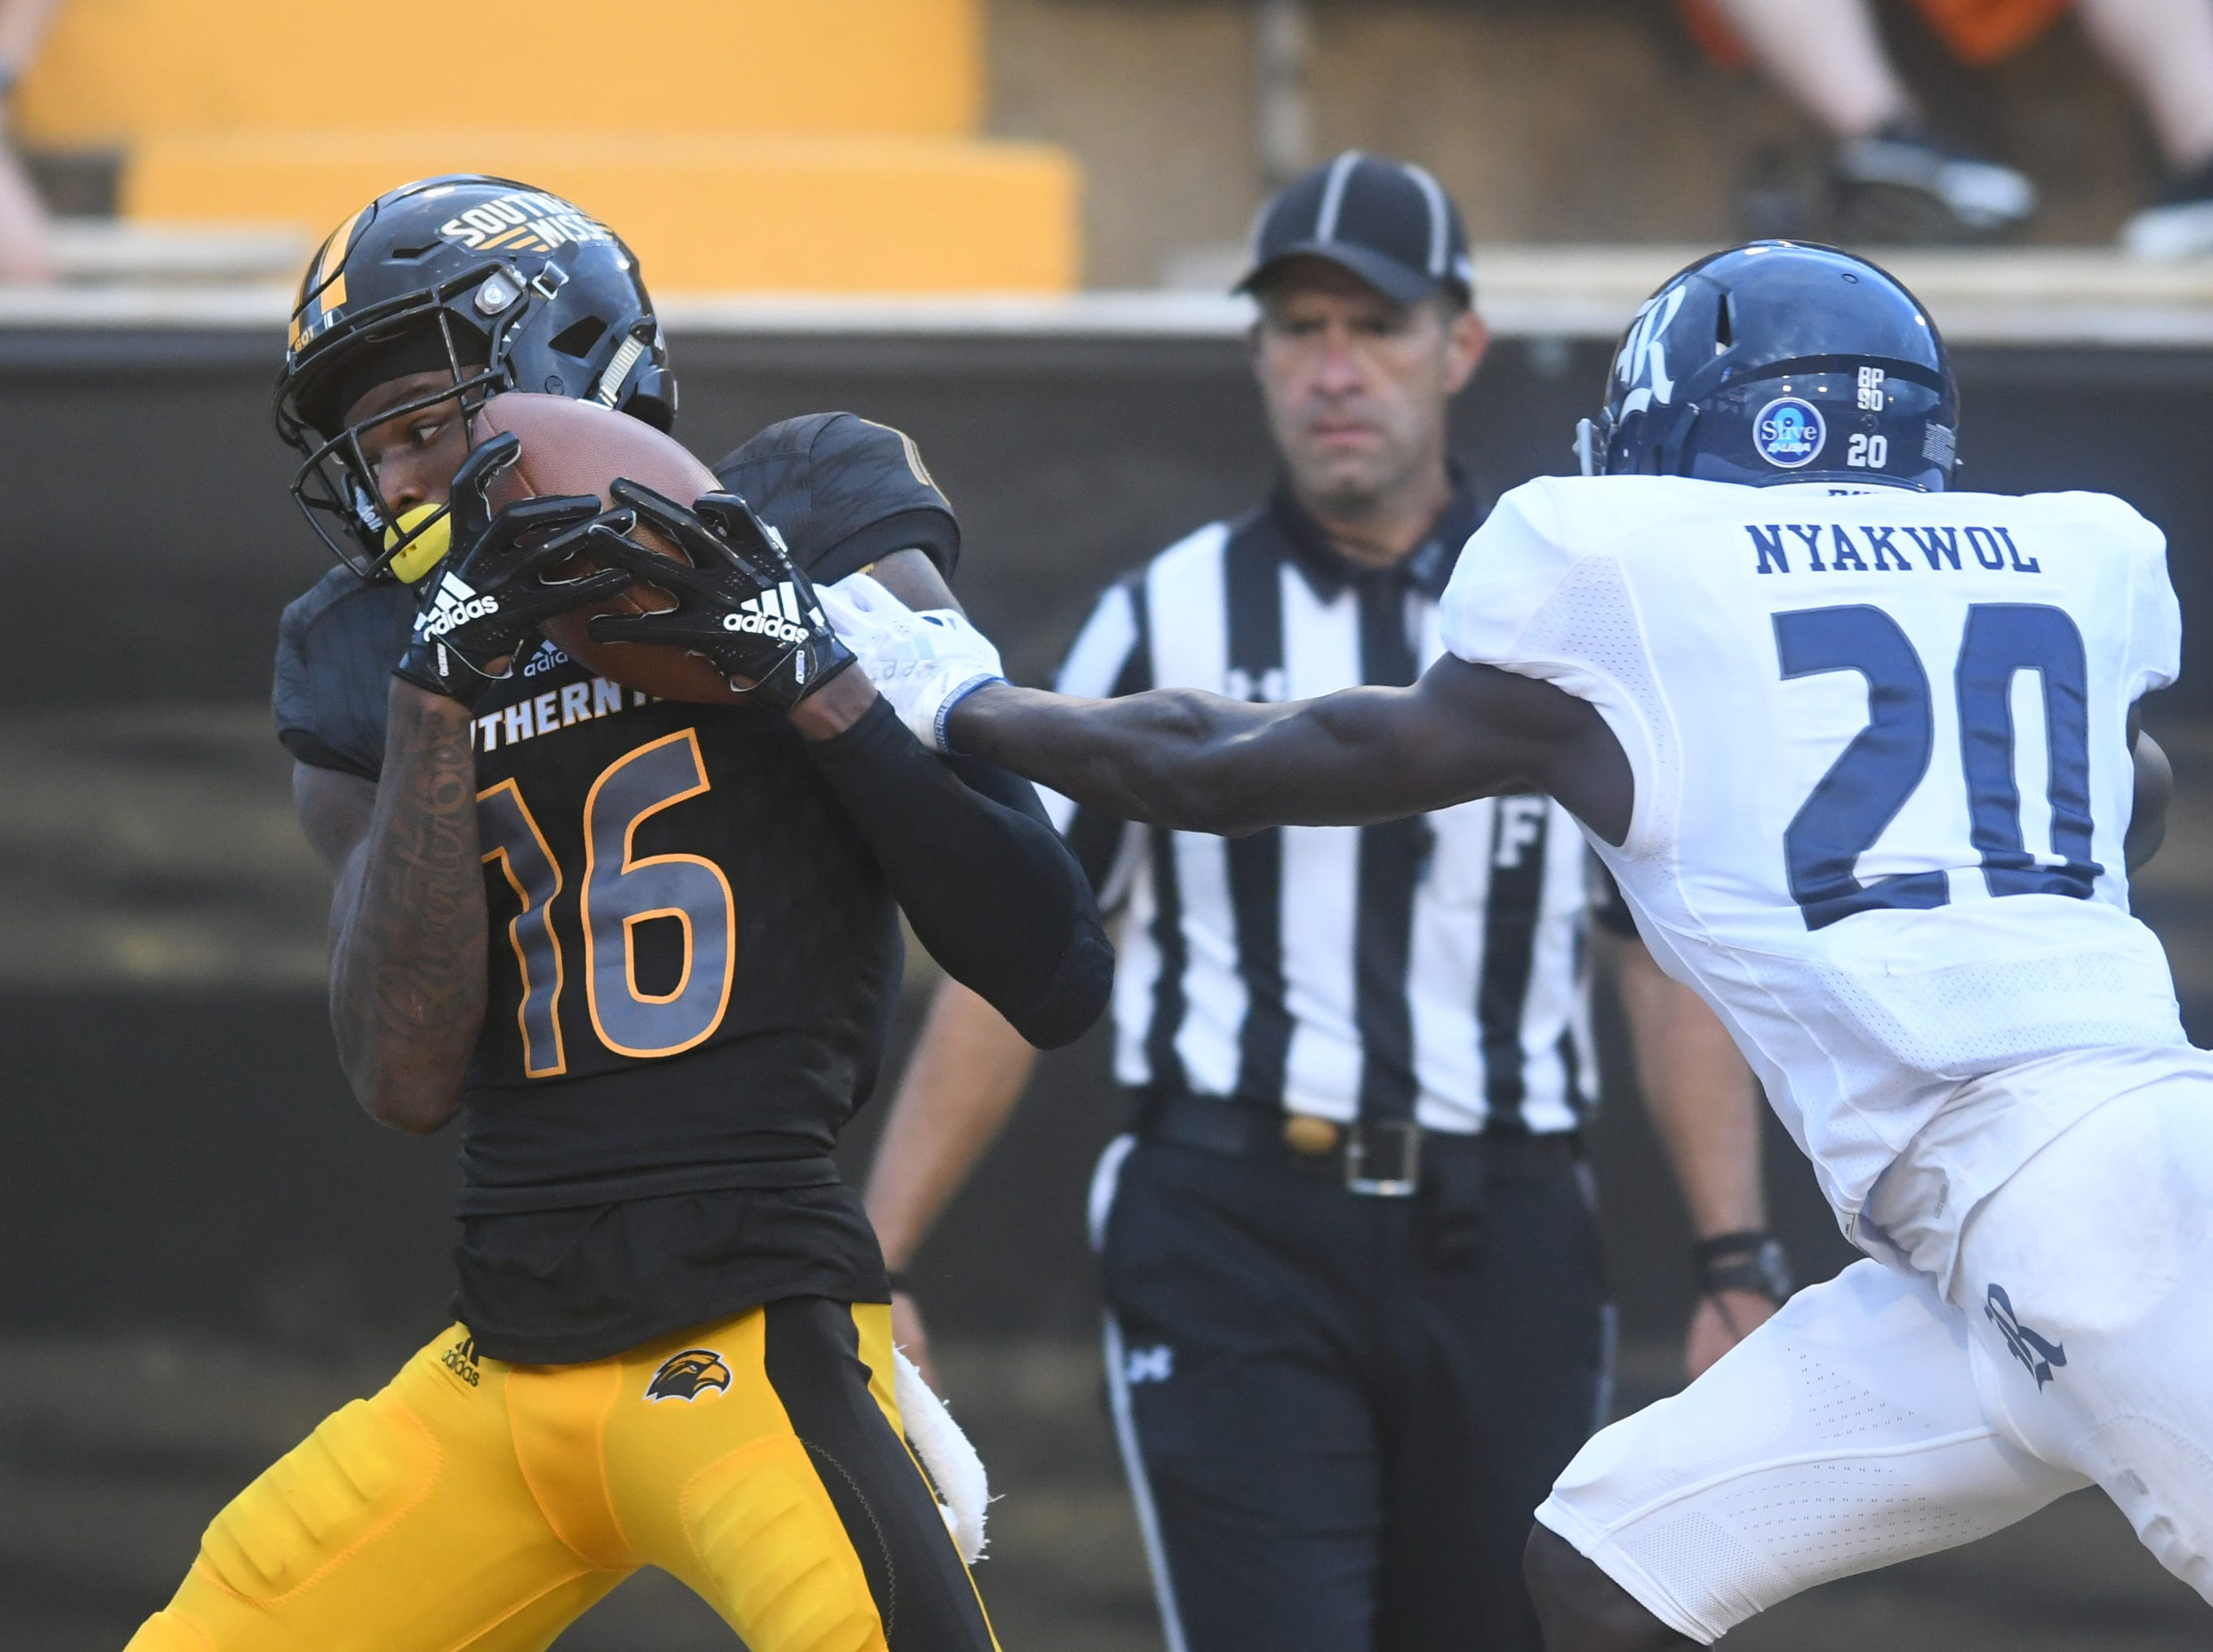 Southern Miss wide receiver Quez Watkins catches the ball for a first down in a game against Rice at M.M. Roberts Stadium on Saturday, September 22, 2018.